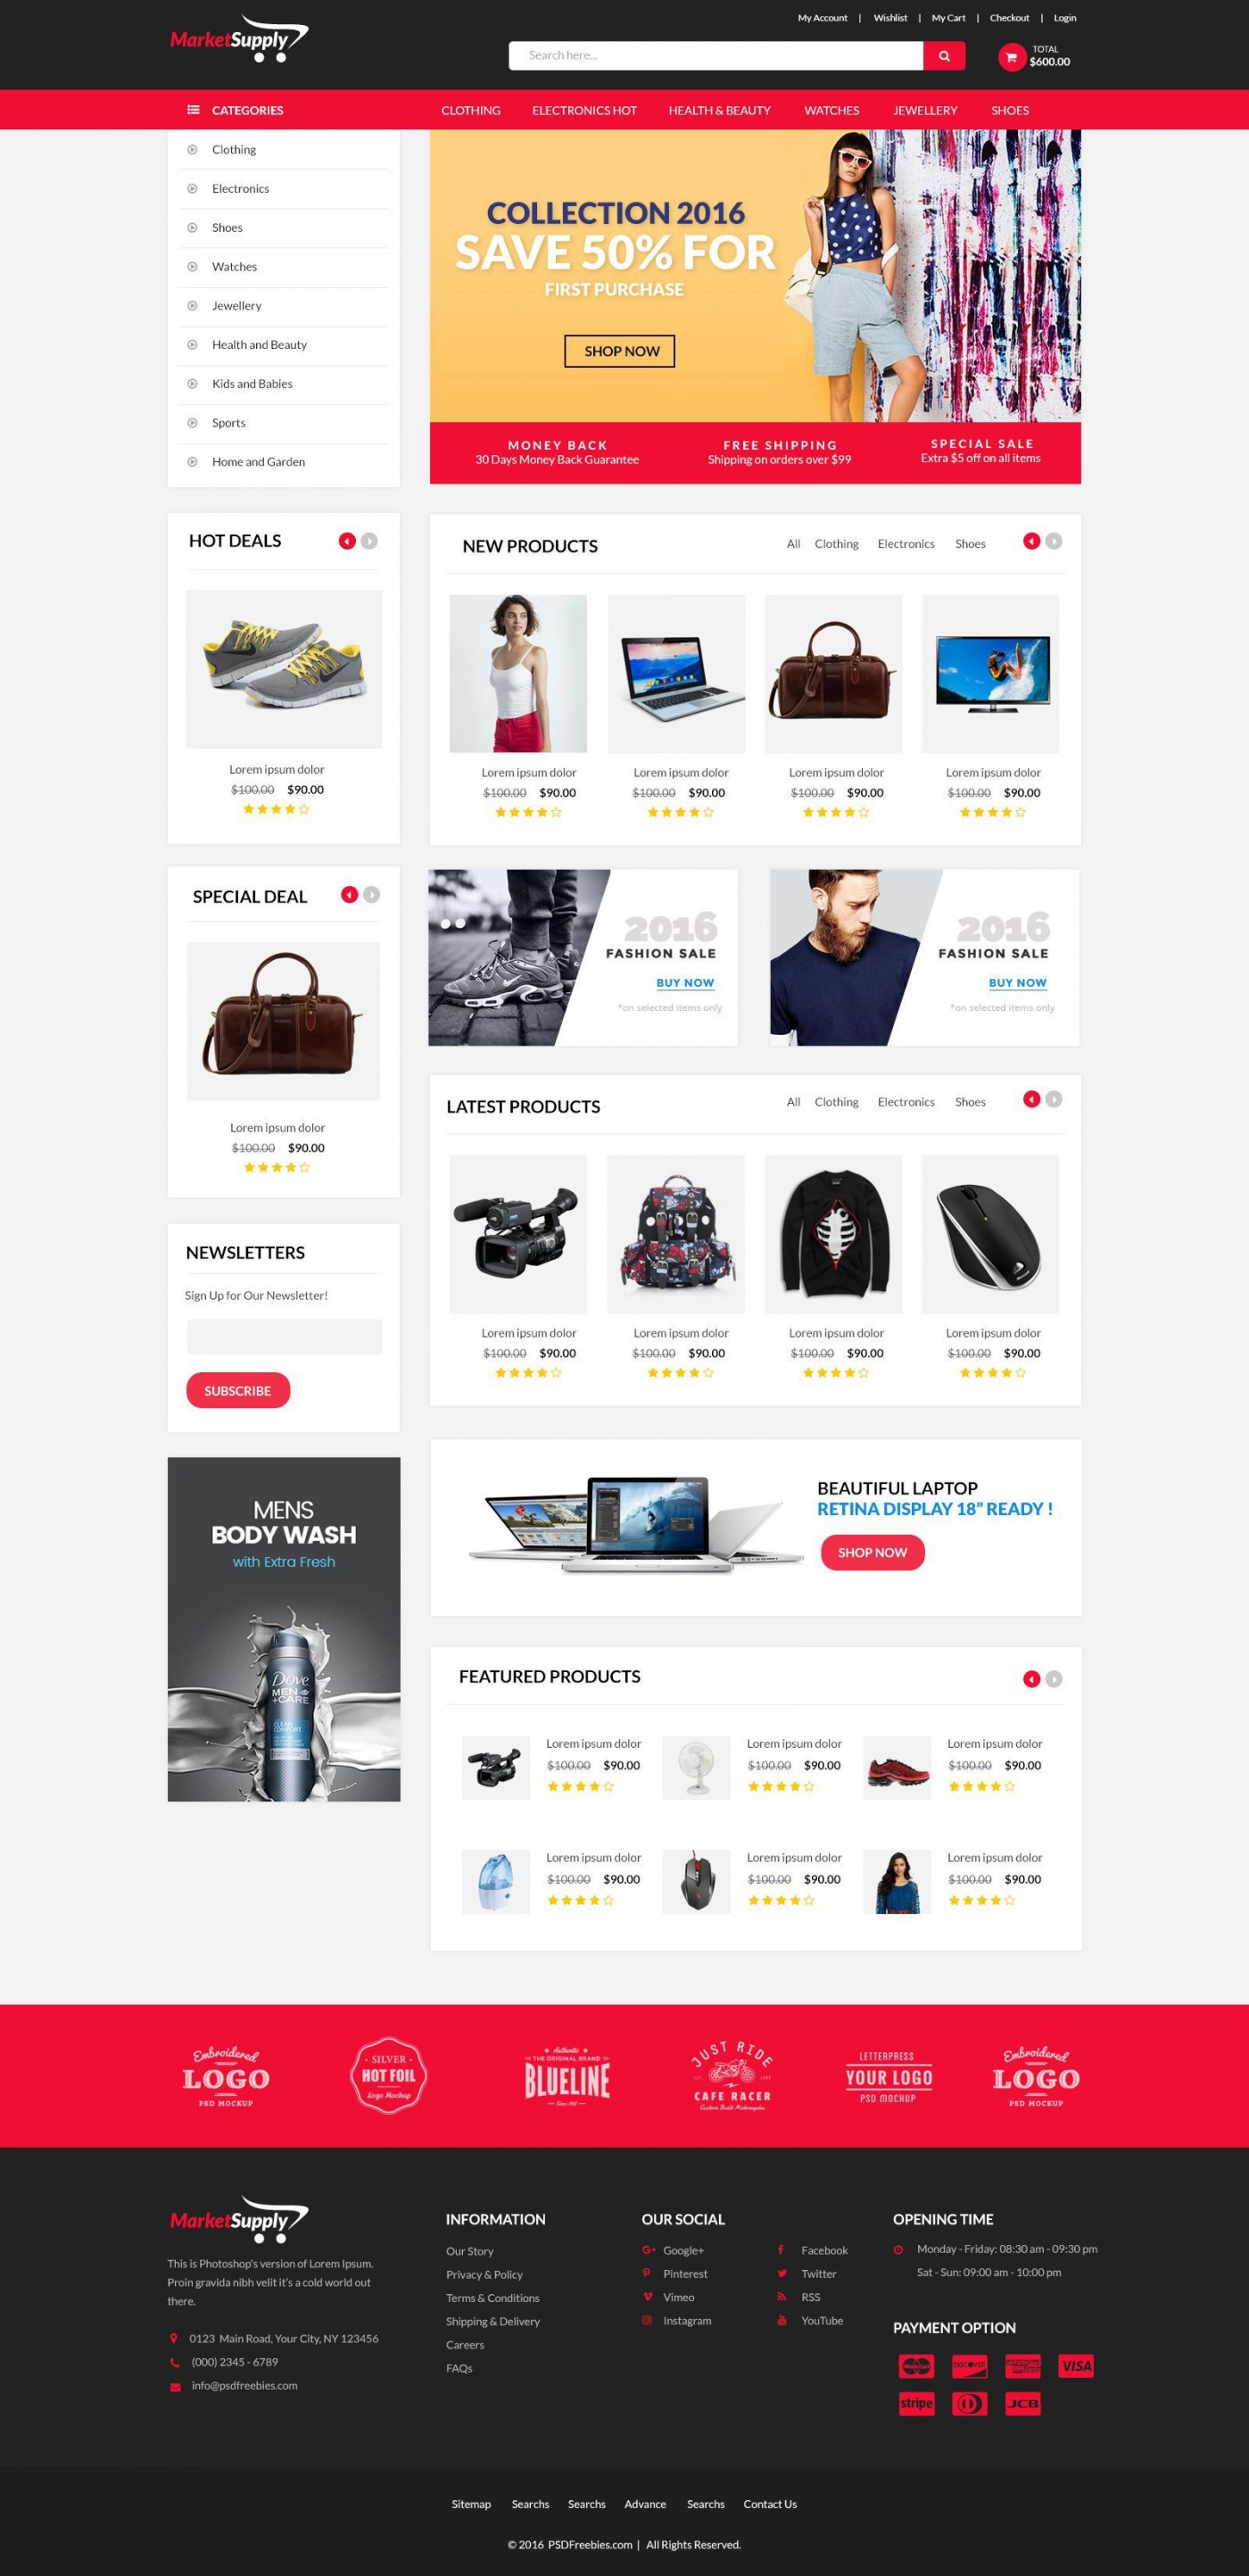 000 Shocking Free Php Website Template Idea  With Admin Panel Download Source Code And Database Cm1400